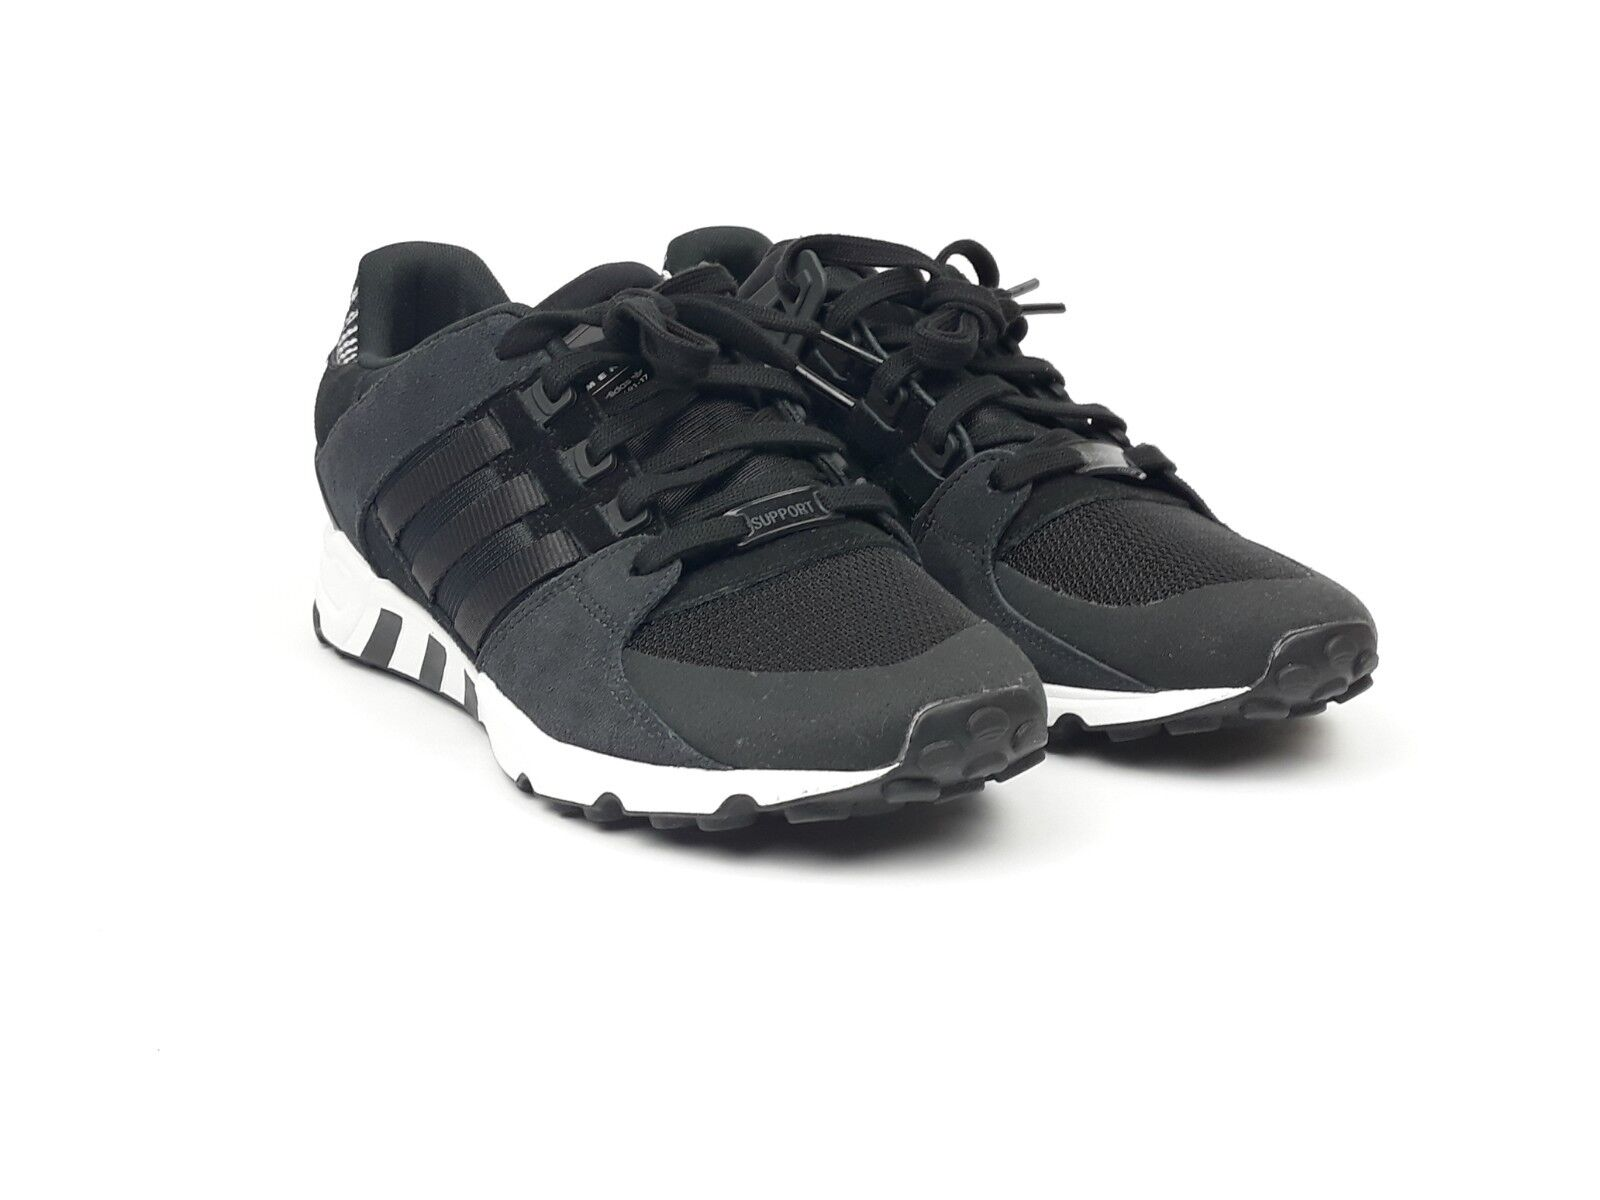 ADIDAS ORIGINALS EQT RF EQUIPMENT RUNNING SUPPORT MENS SHOES SIZE SIZE SIZE US 10.5 BY9623 adcaba